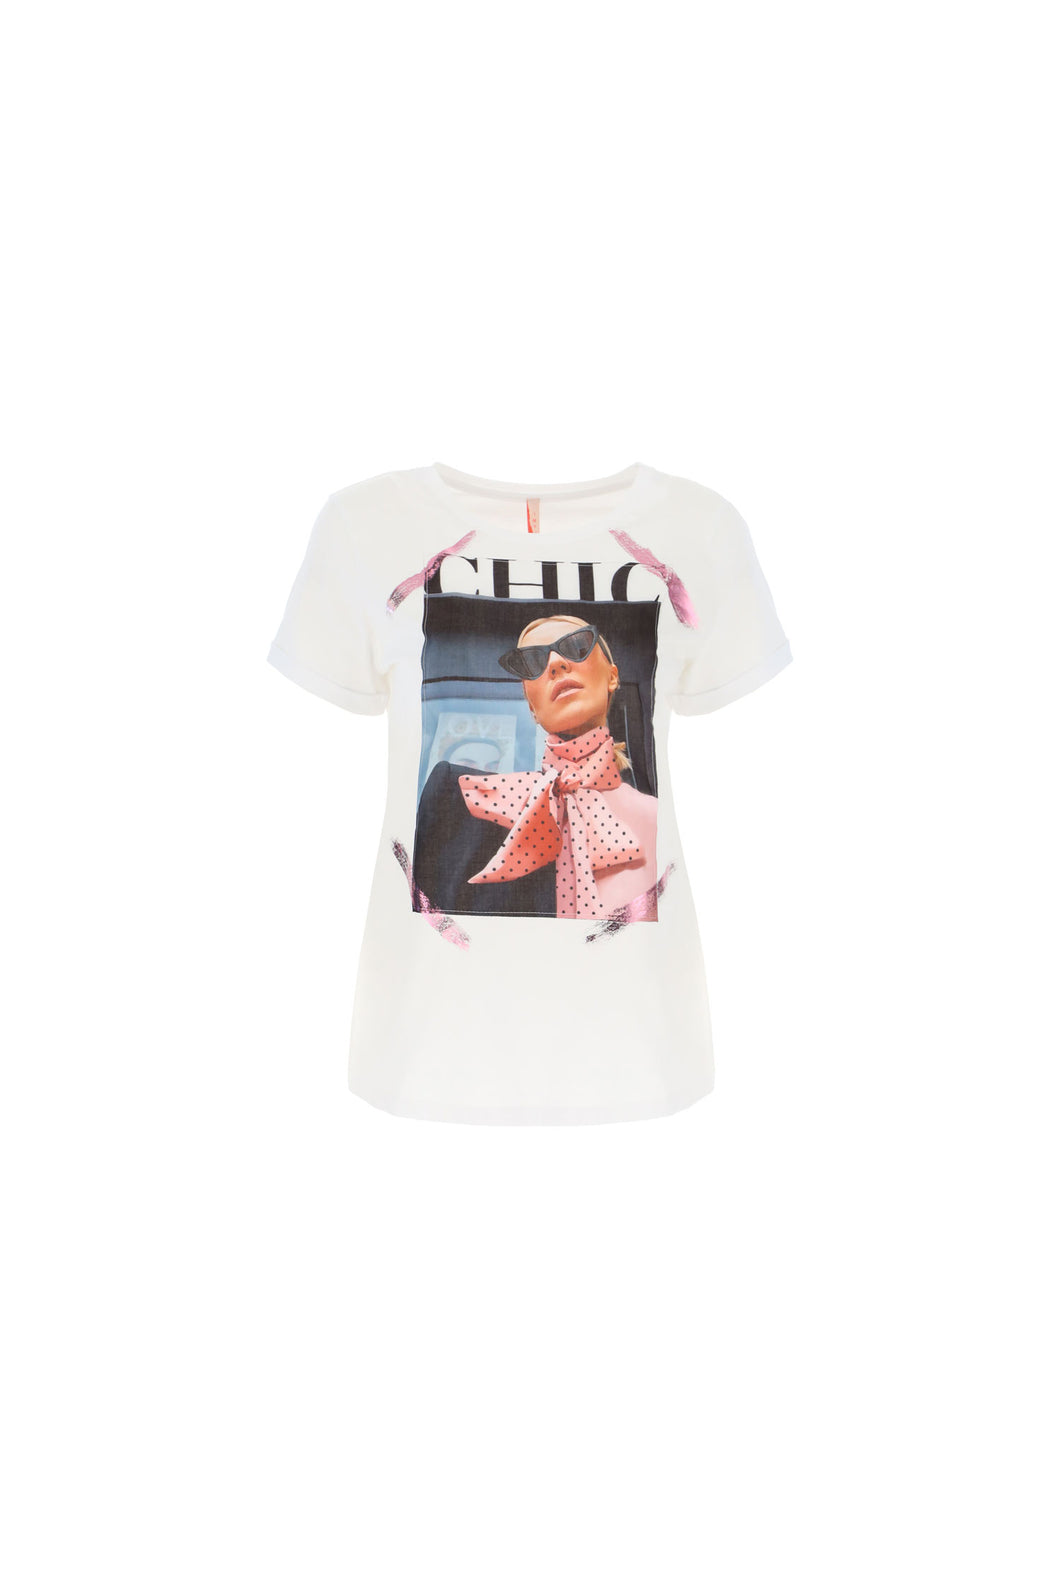 T-SHIRT CON STAMPA CHIC IMPERIAL